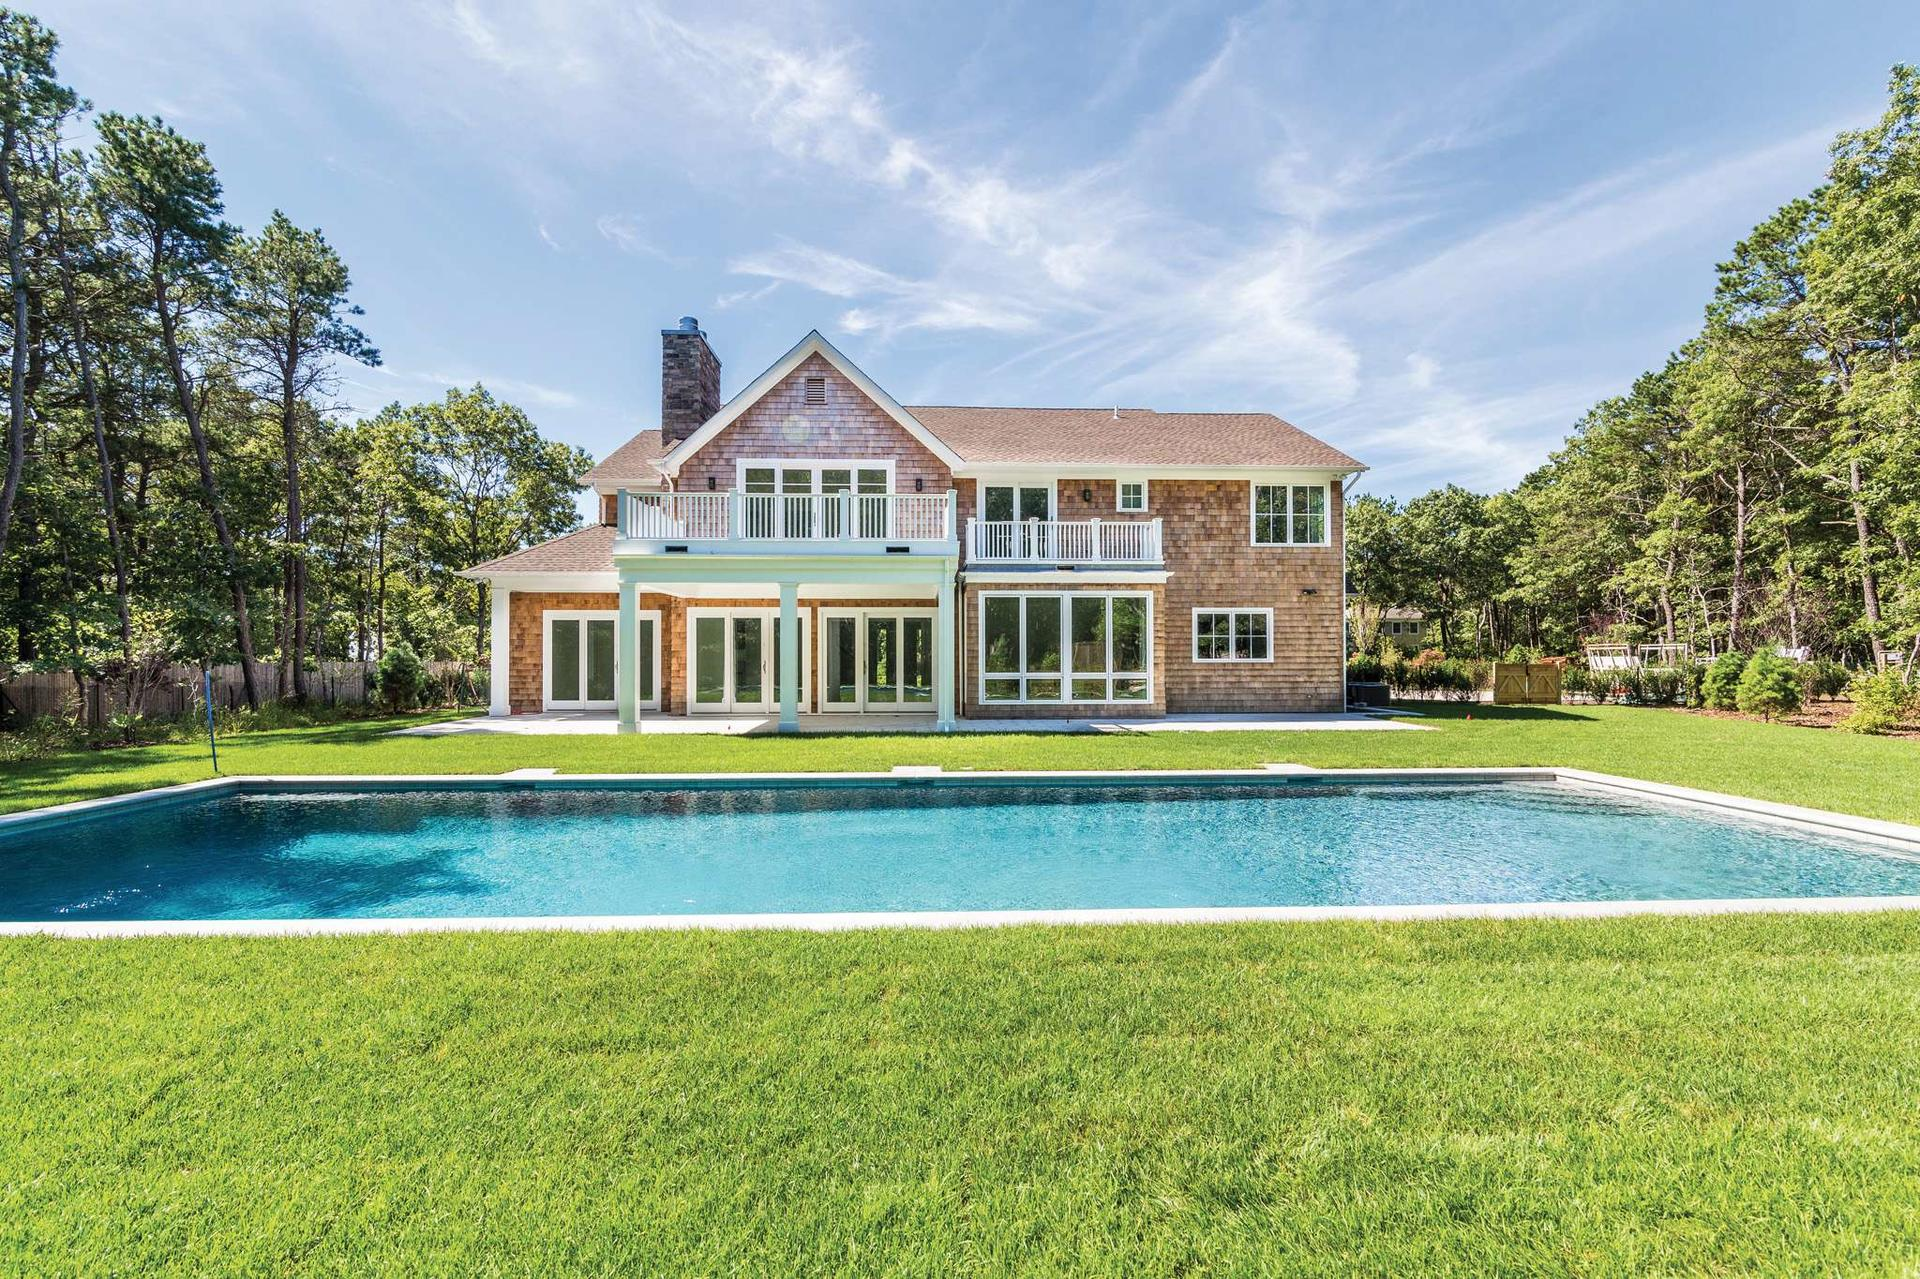 Additional photo for property listing at Stunning New Construction In Wainscott 12 Sandown Court,  Wainscott, Nueva York